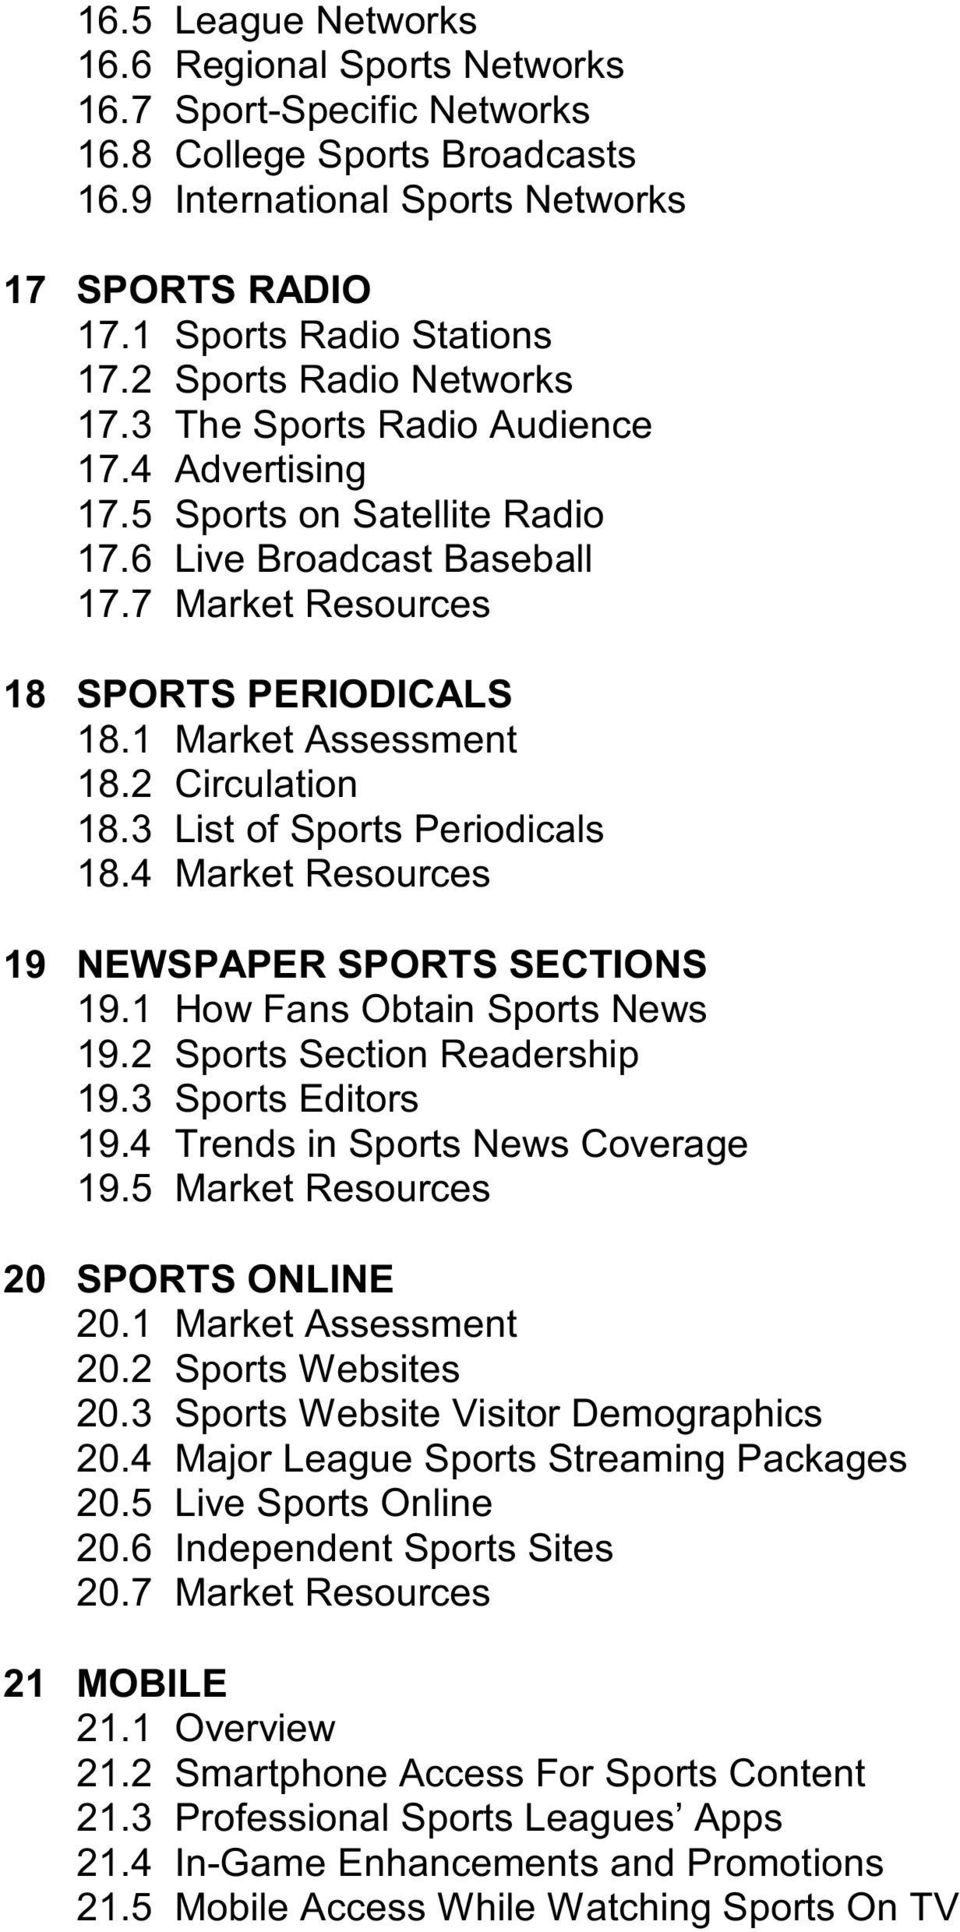 1 Market Assessment 18.2 Circulation 18.3 List of Sports Periodicals 18.4 Market Resources 19 NEWSPAPER SPORTS SECTIONS 19.1 How Fans Obtain Sports News 19.2 Sports Section Readership 19.